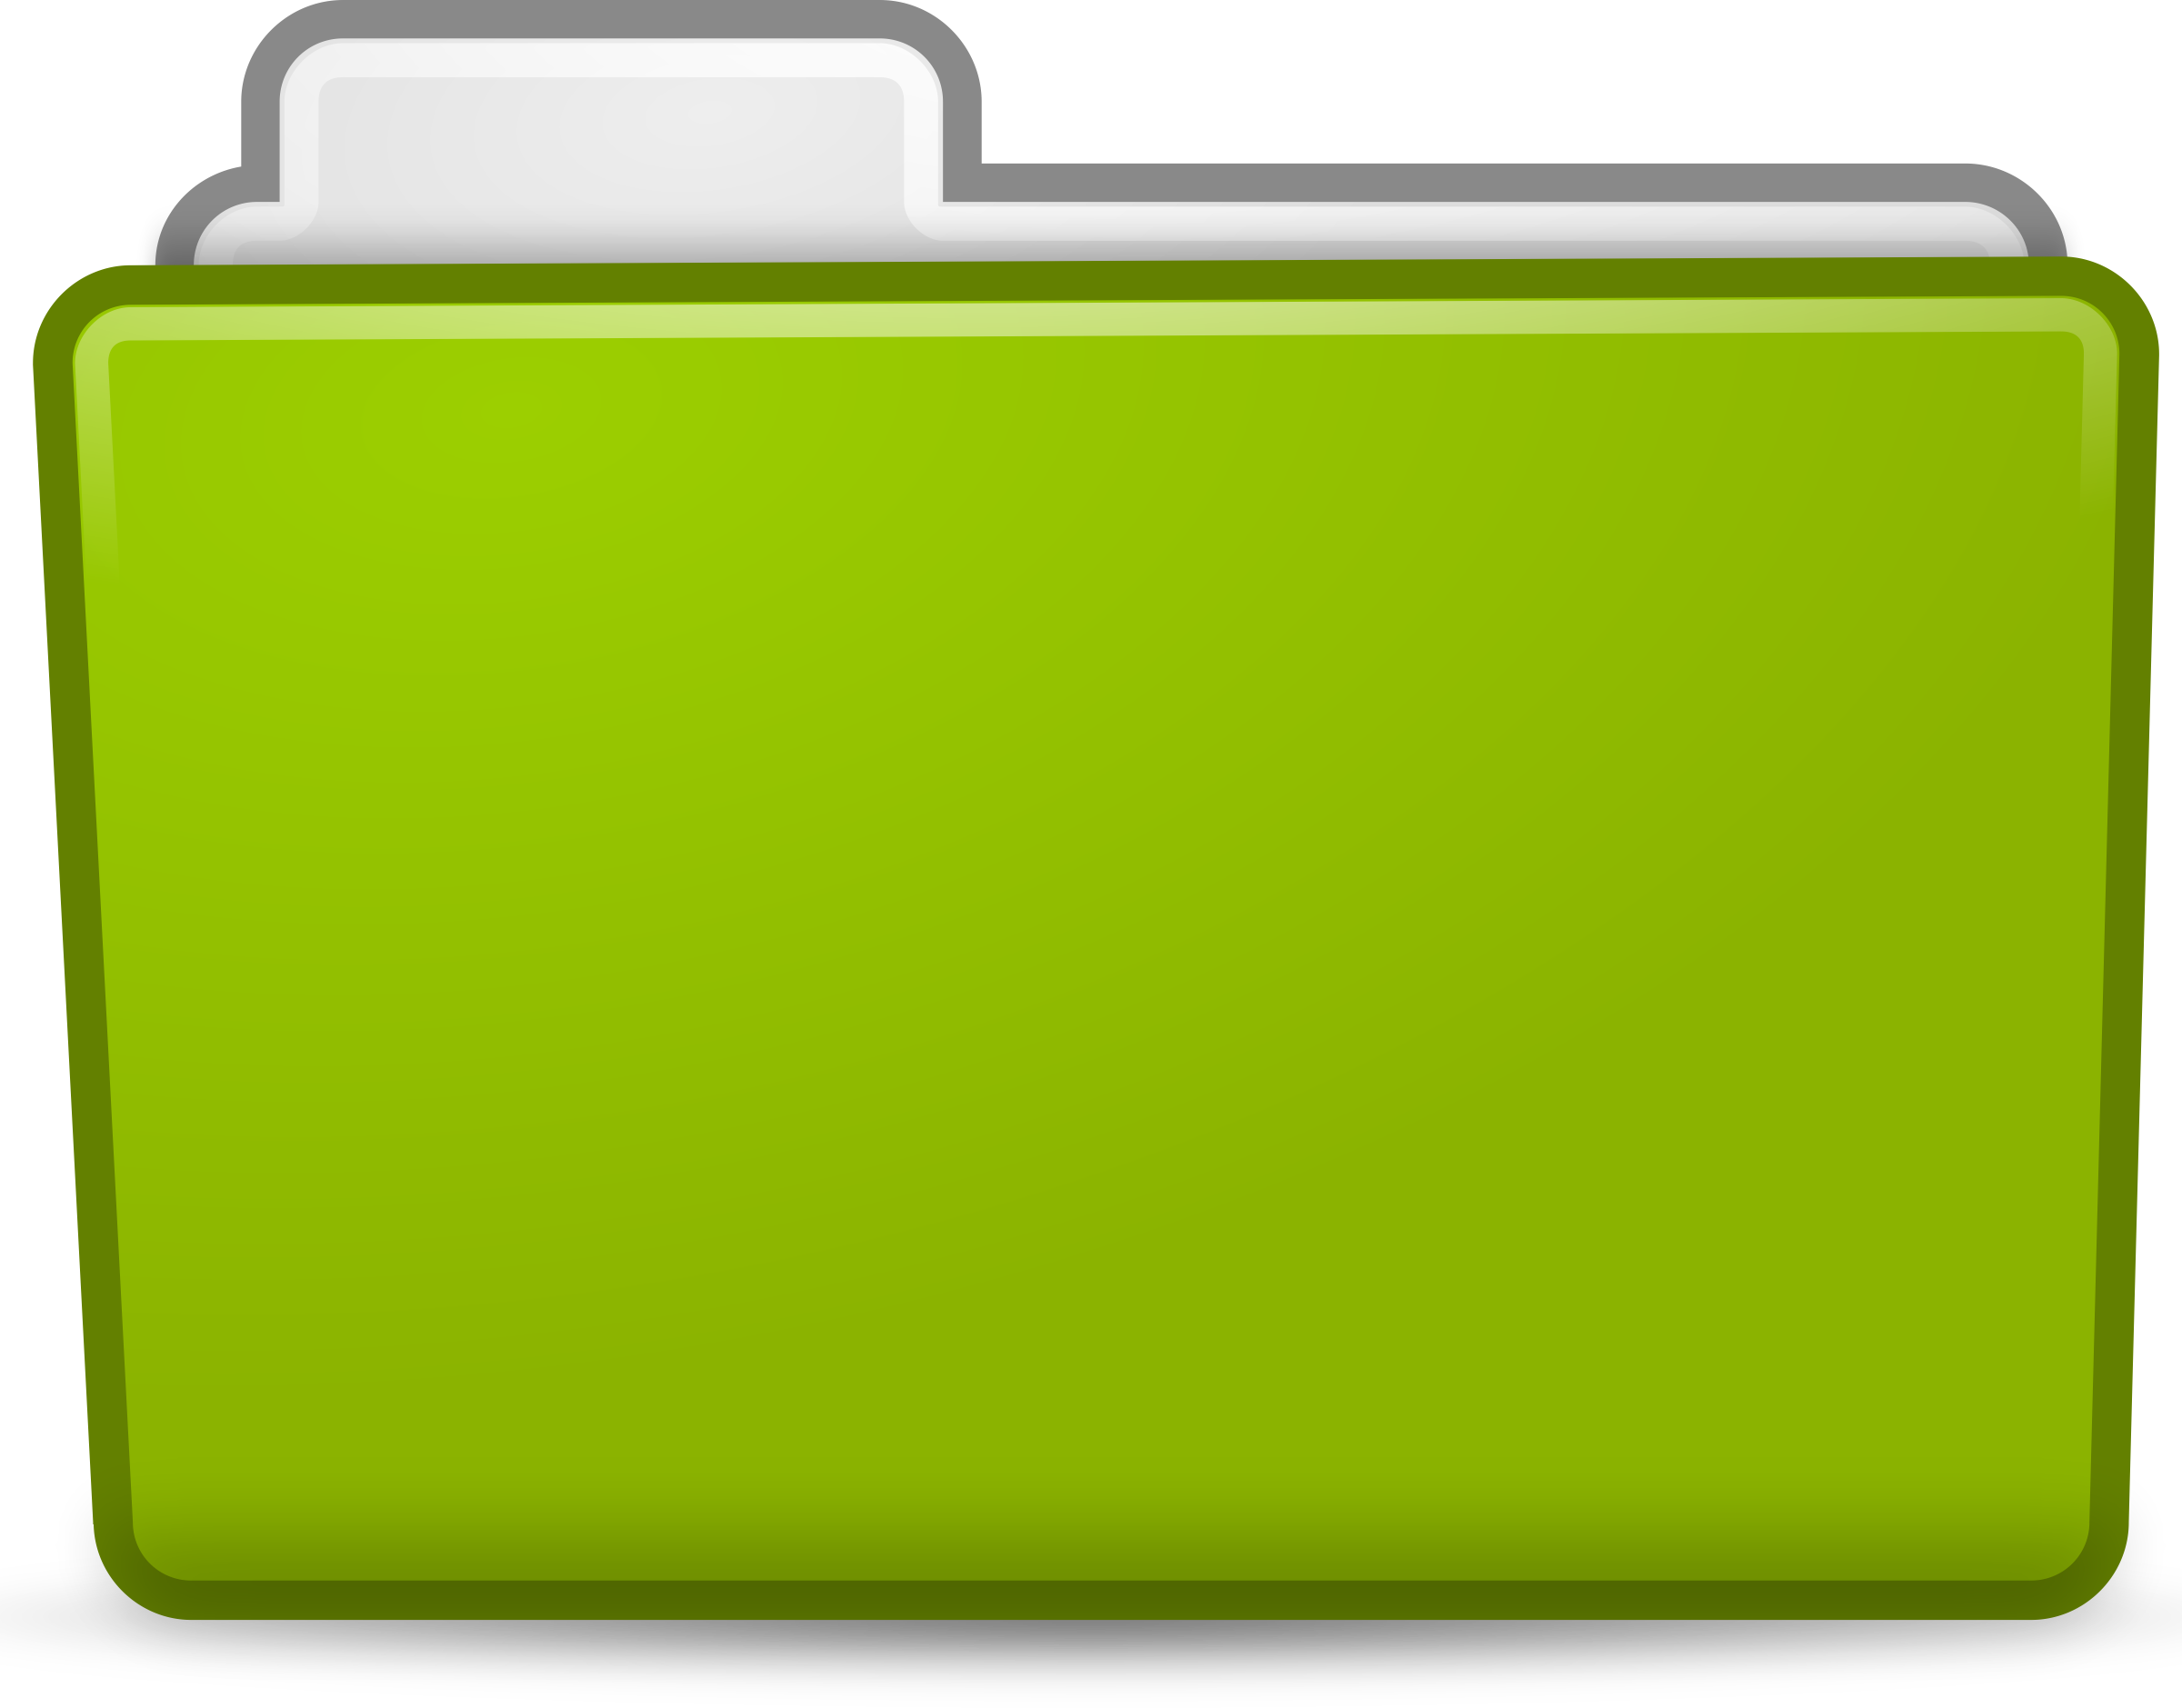 Green folder icon png. Matt icons free and